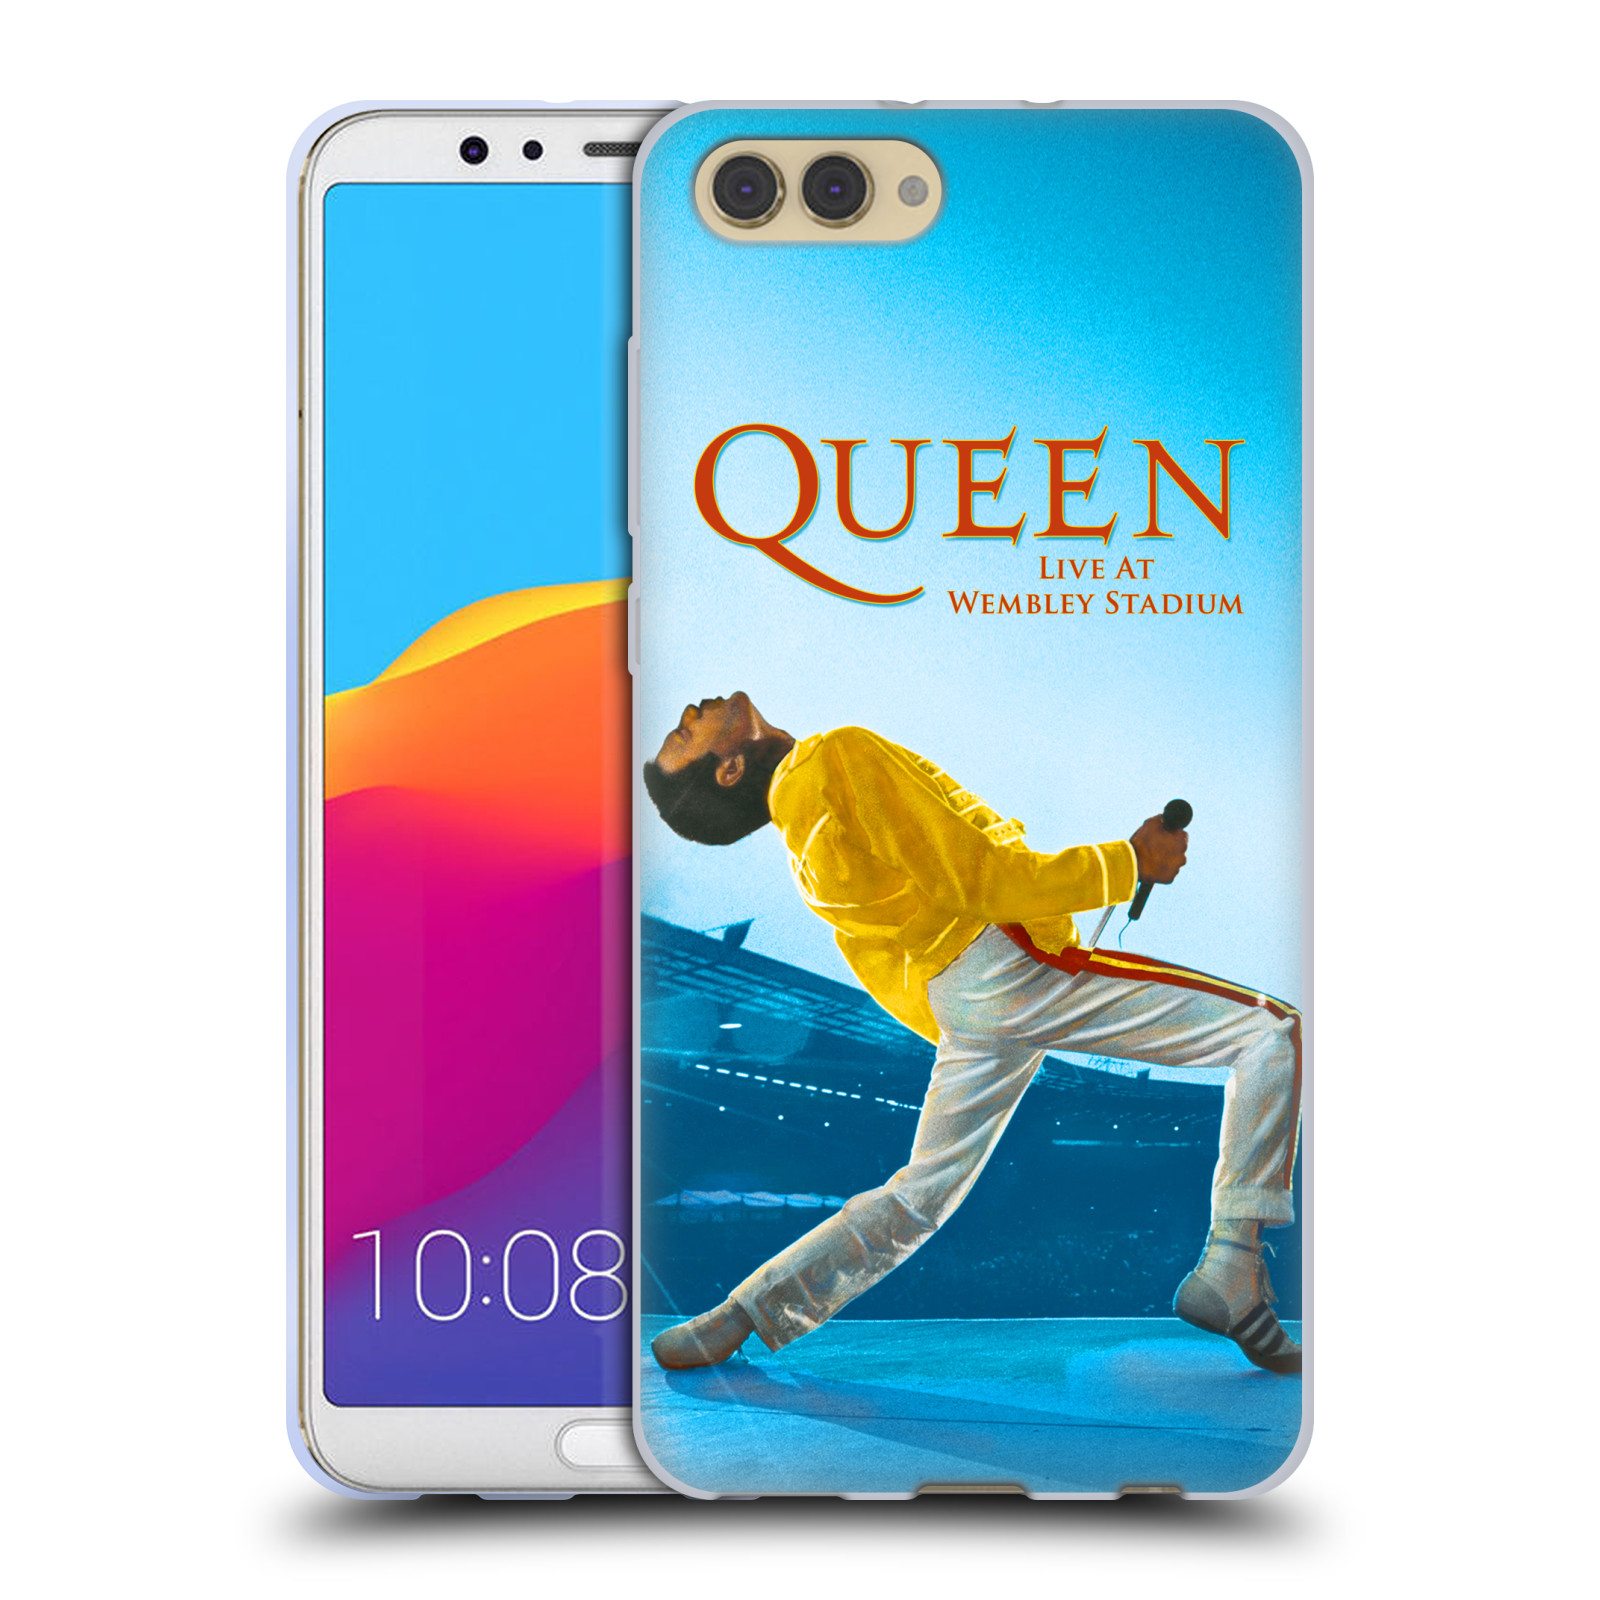 Silikonové pouzdro na mobil Honor View 10 - Head Case - Queen - Freddie Mercury